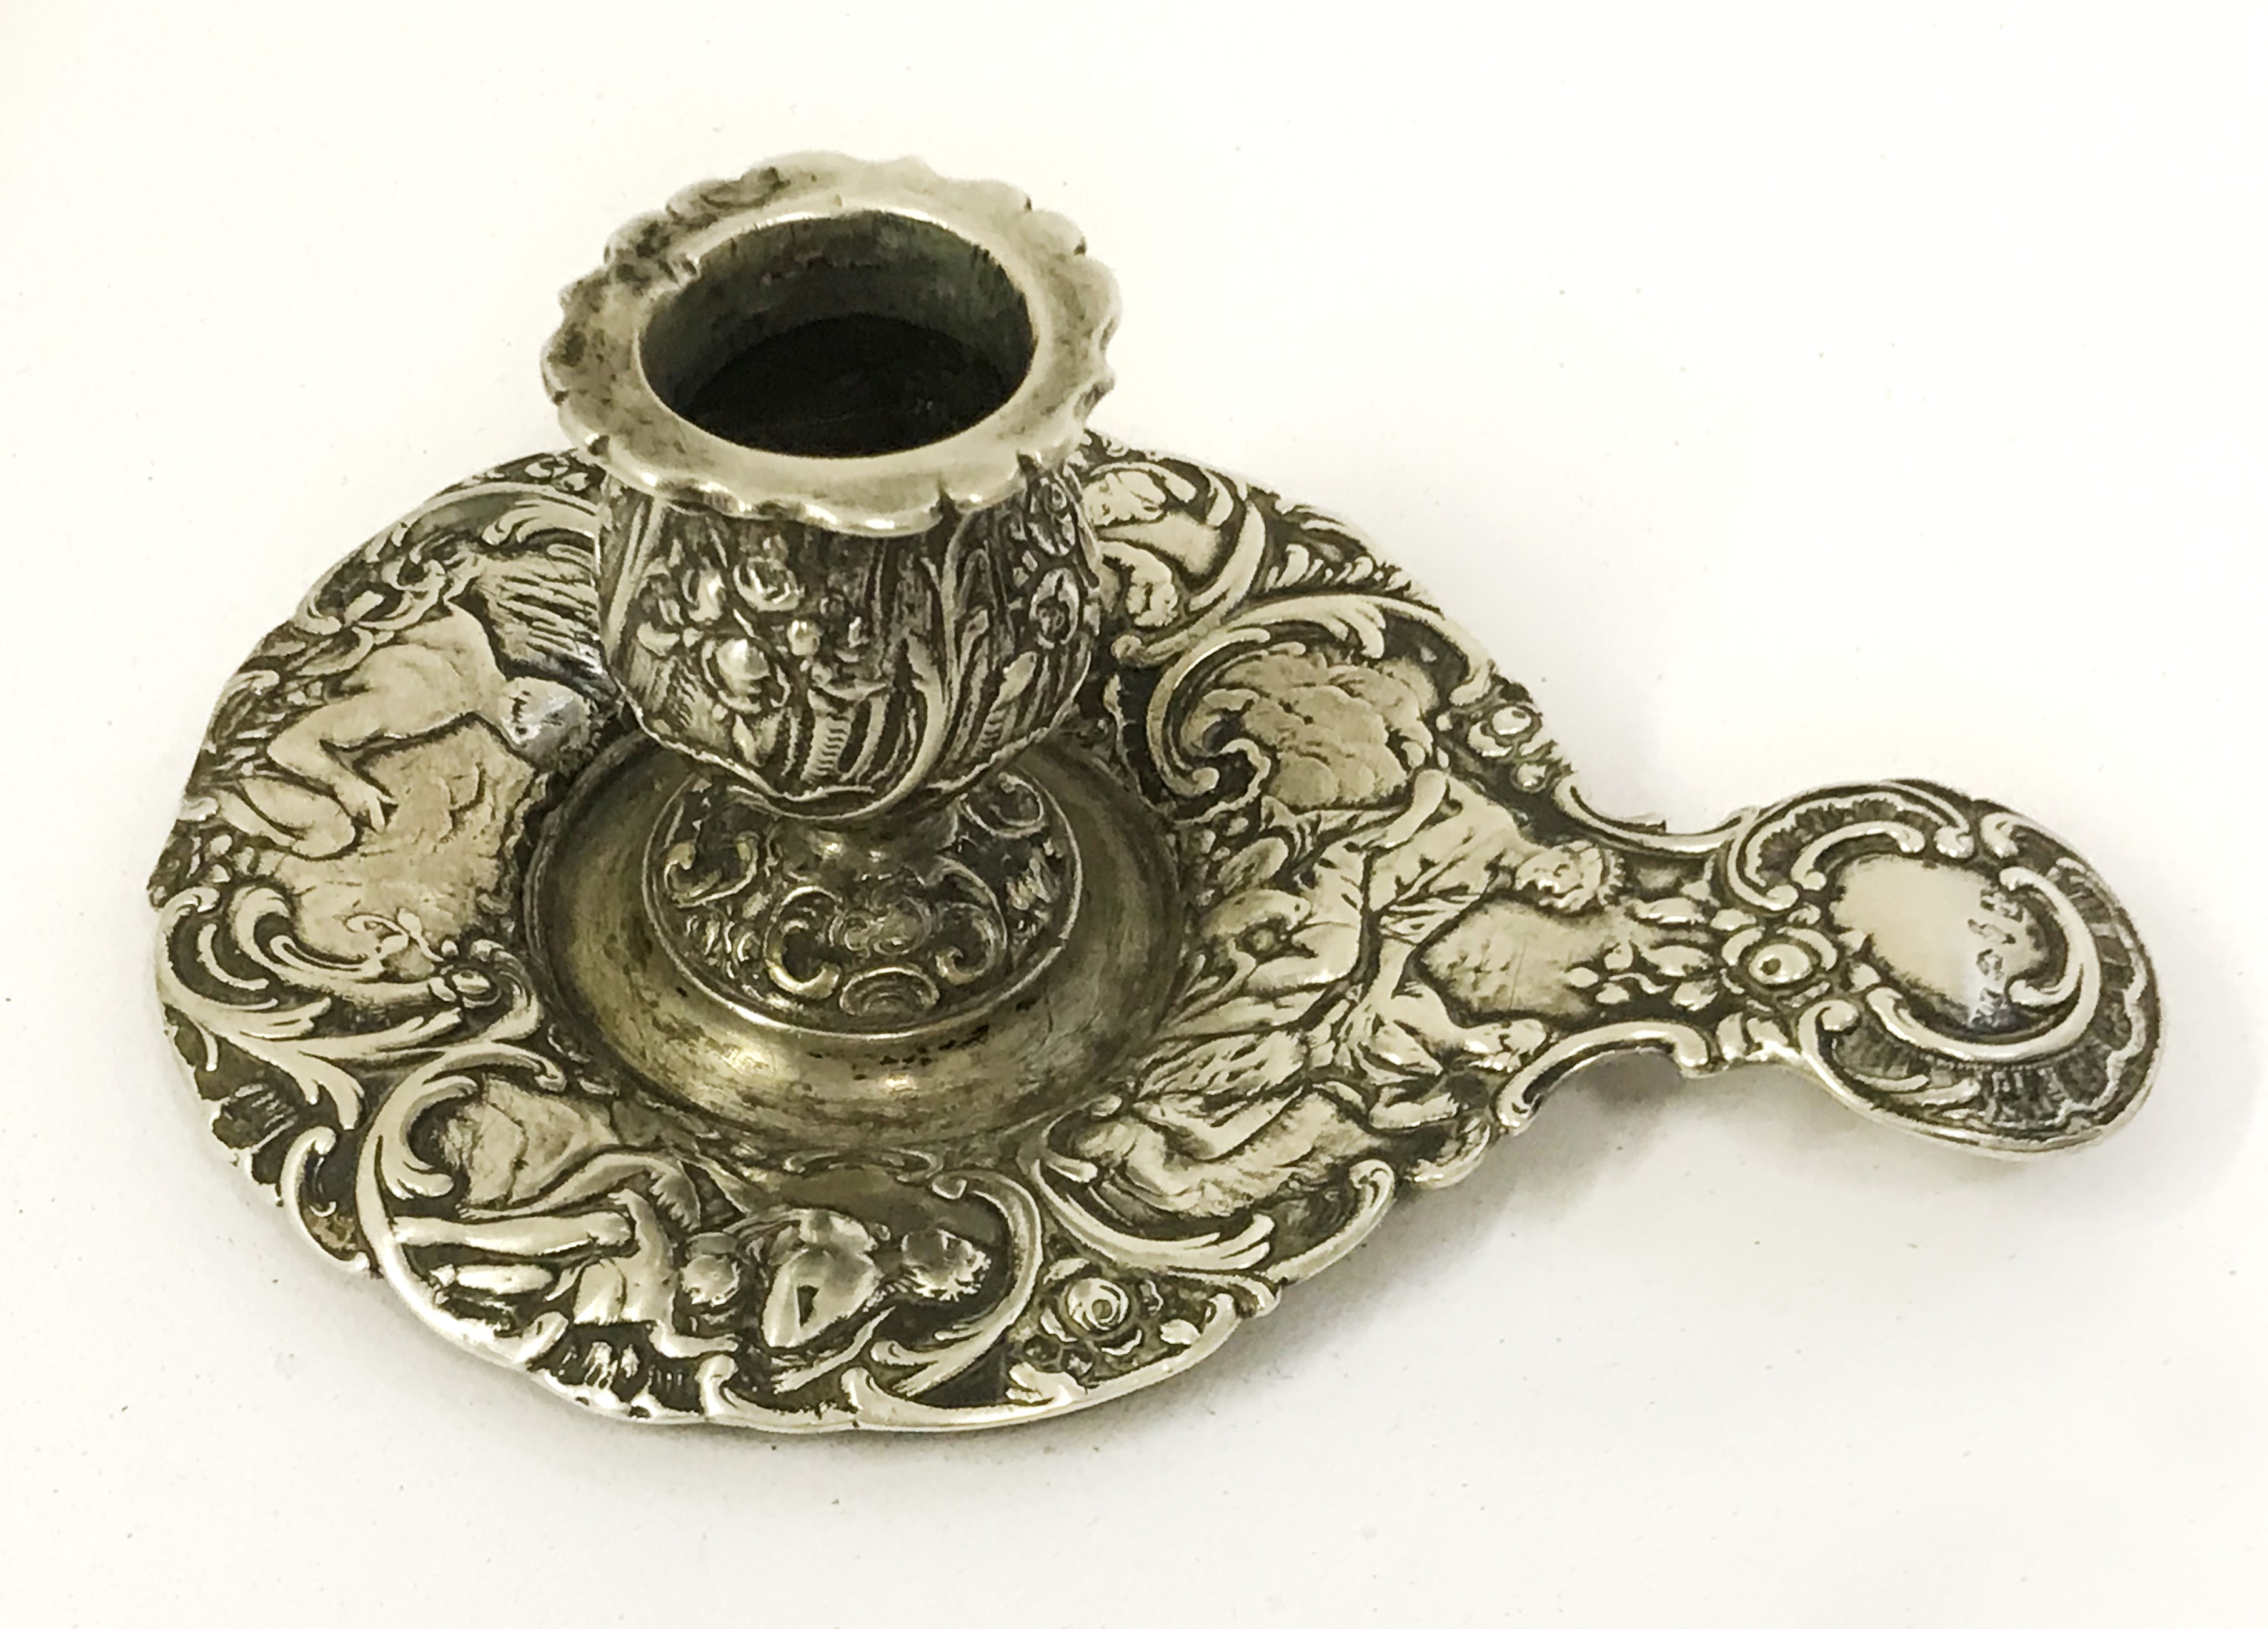 Lot 12A - ANTIQUE HALLMARKED SILVER FRENCH CHAMBERSTICK CANDLESTICK HOLDER